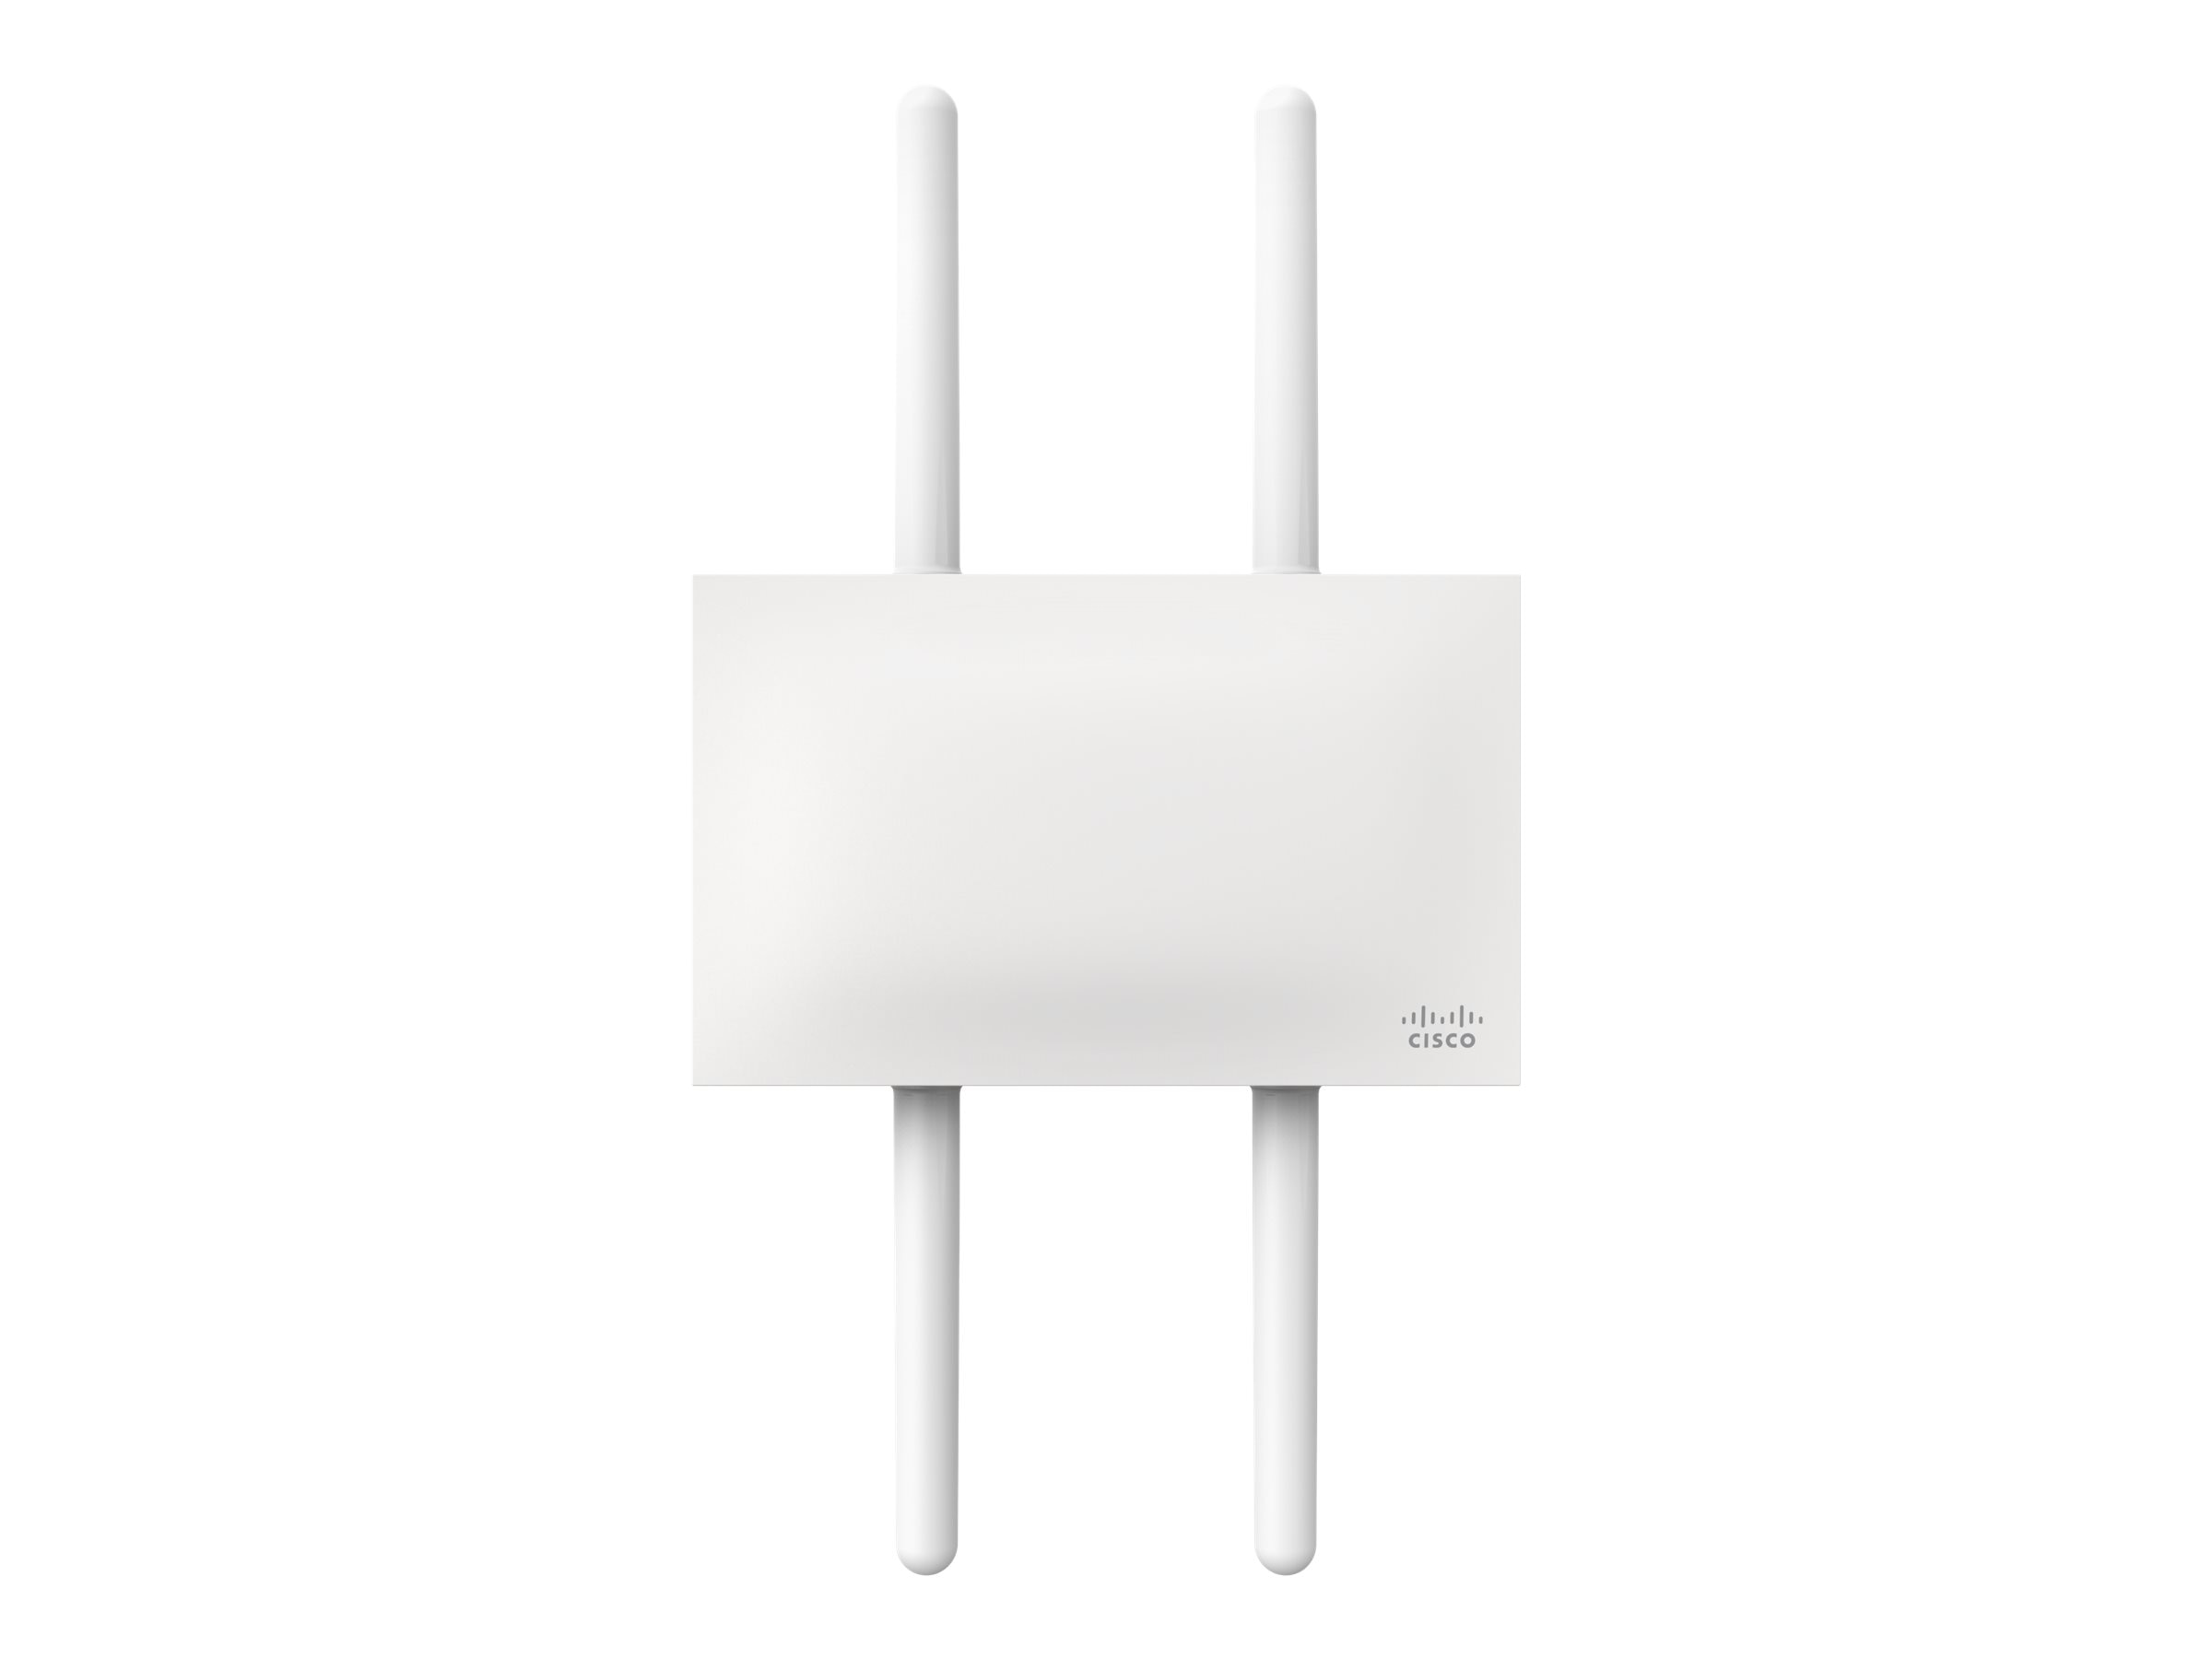 Cisco Meraki MR72 Cloud Managed Outdoor AP, MR72-HW, 18387805, Wireless Access Points & Bridges